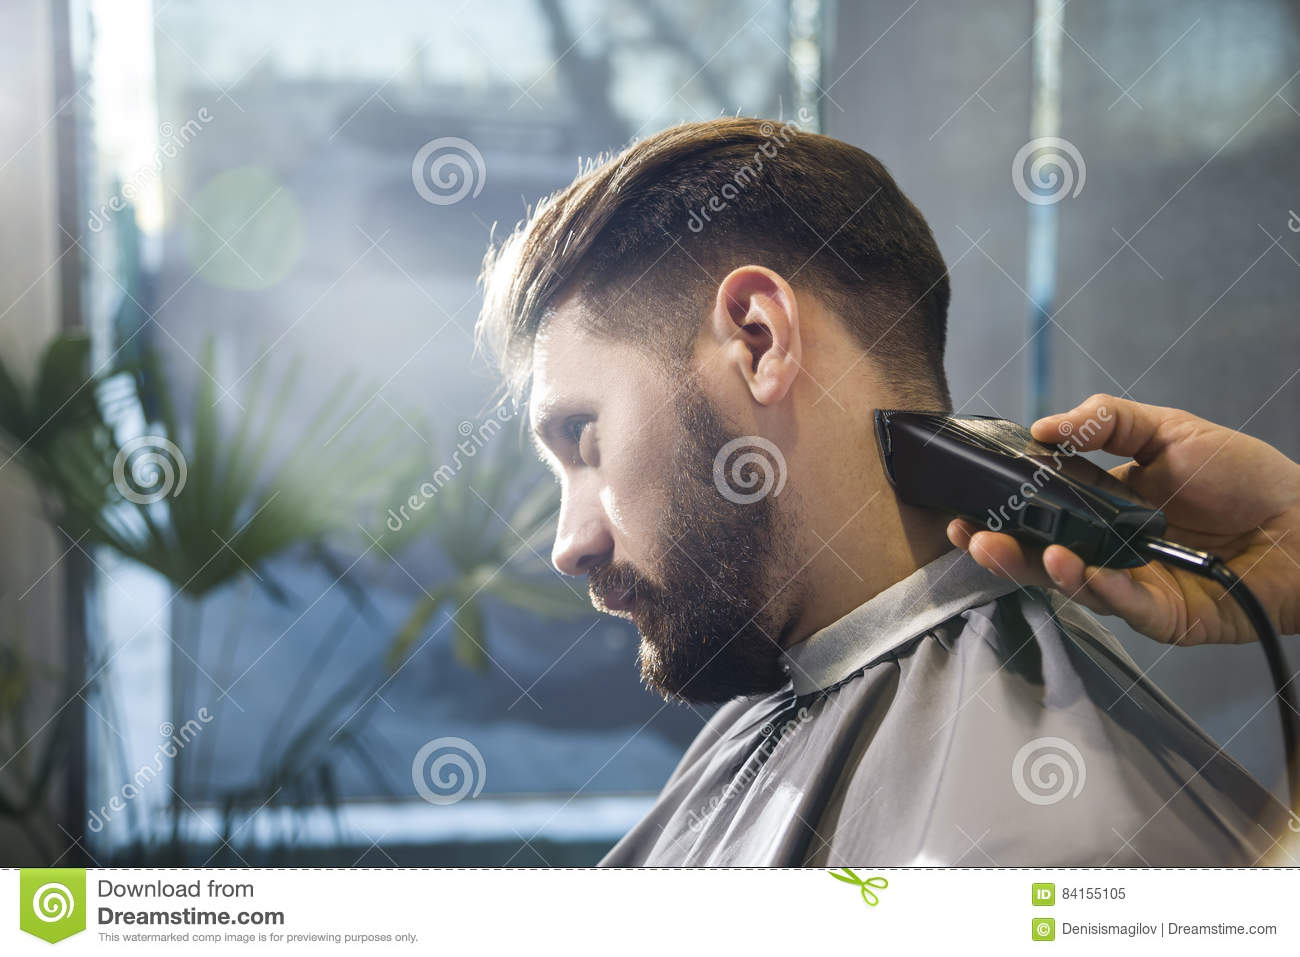 Close up of barber's hands trimming a serious businessman's hair.